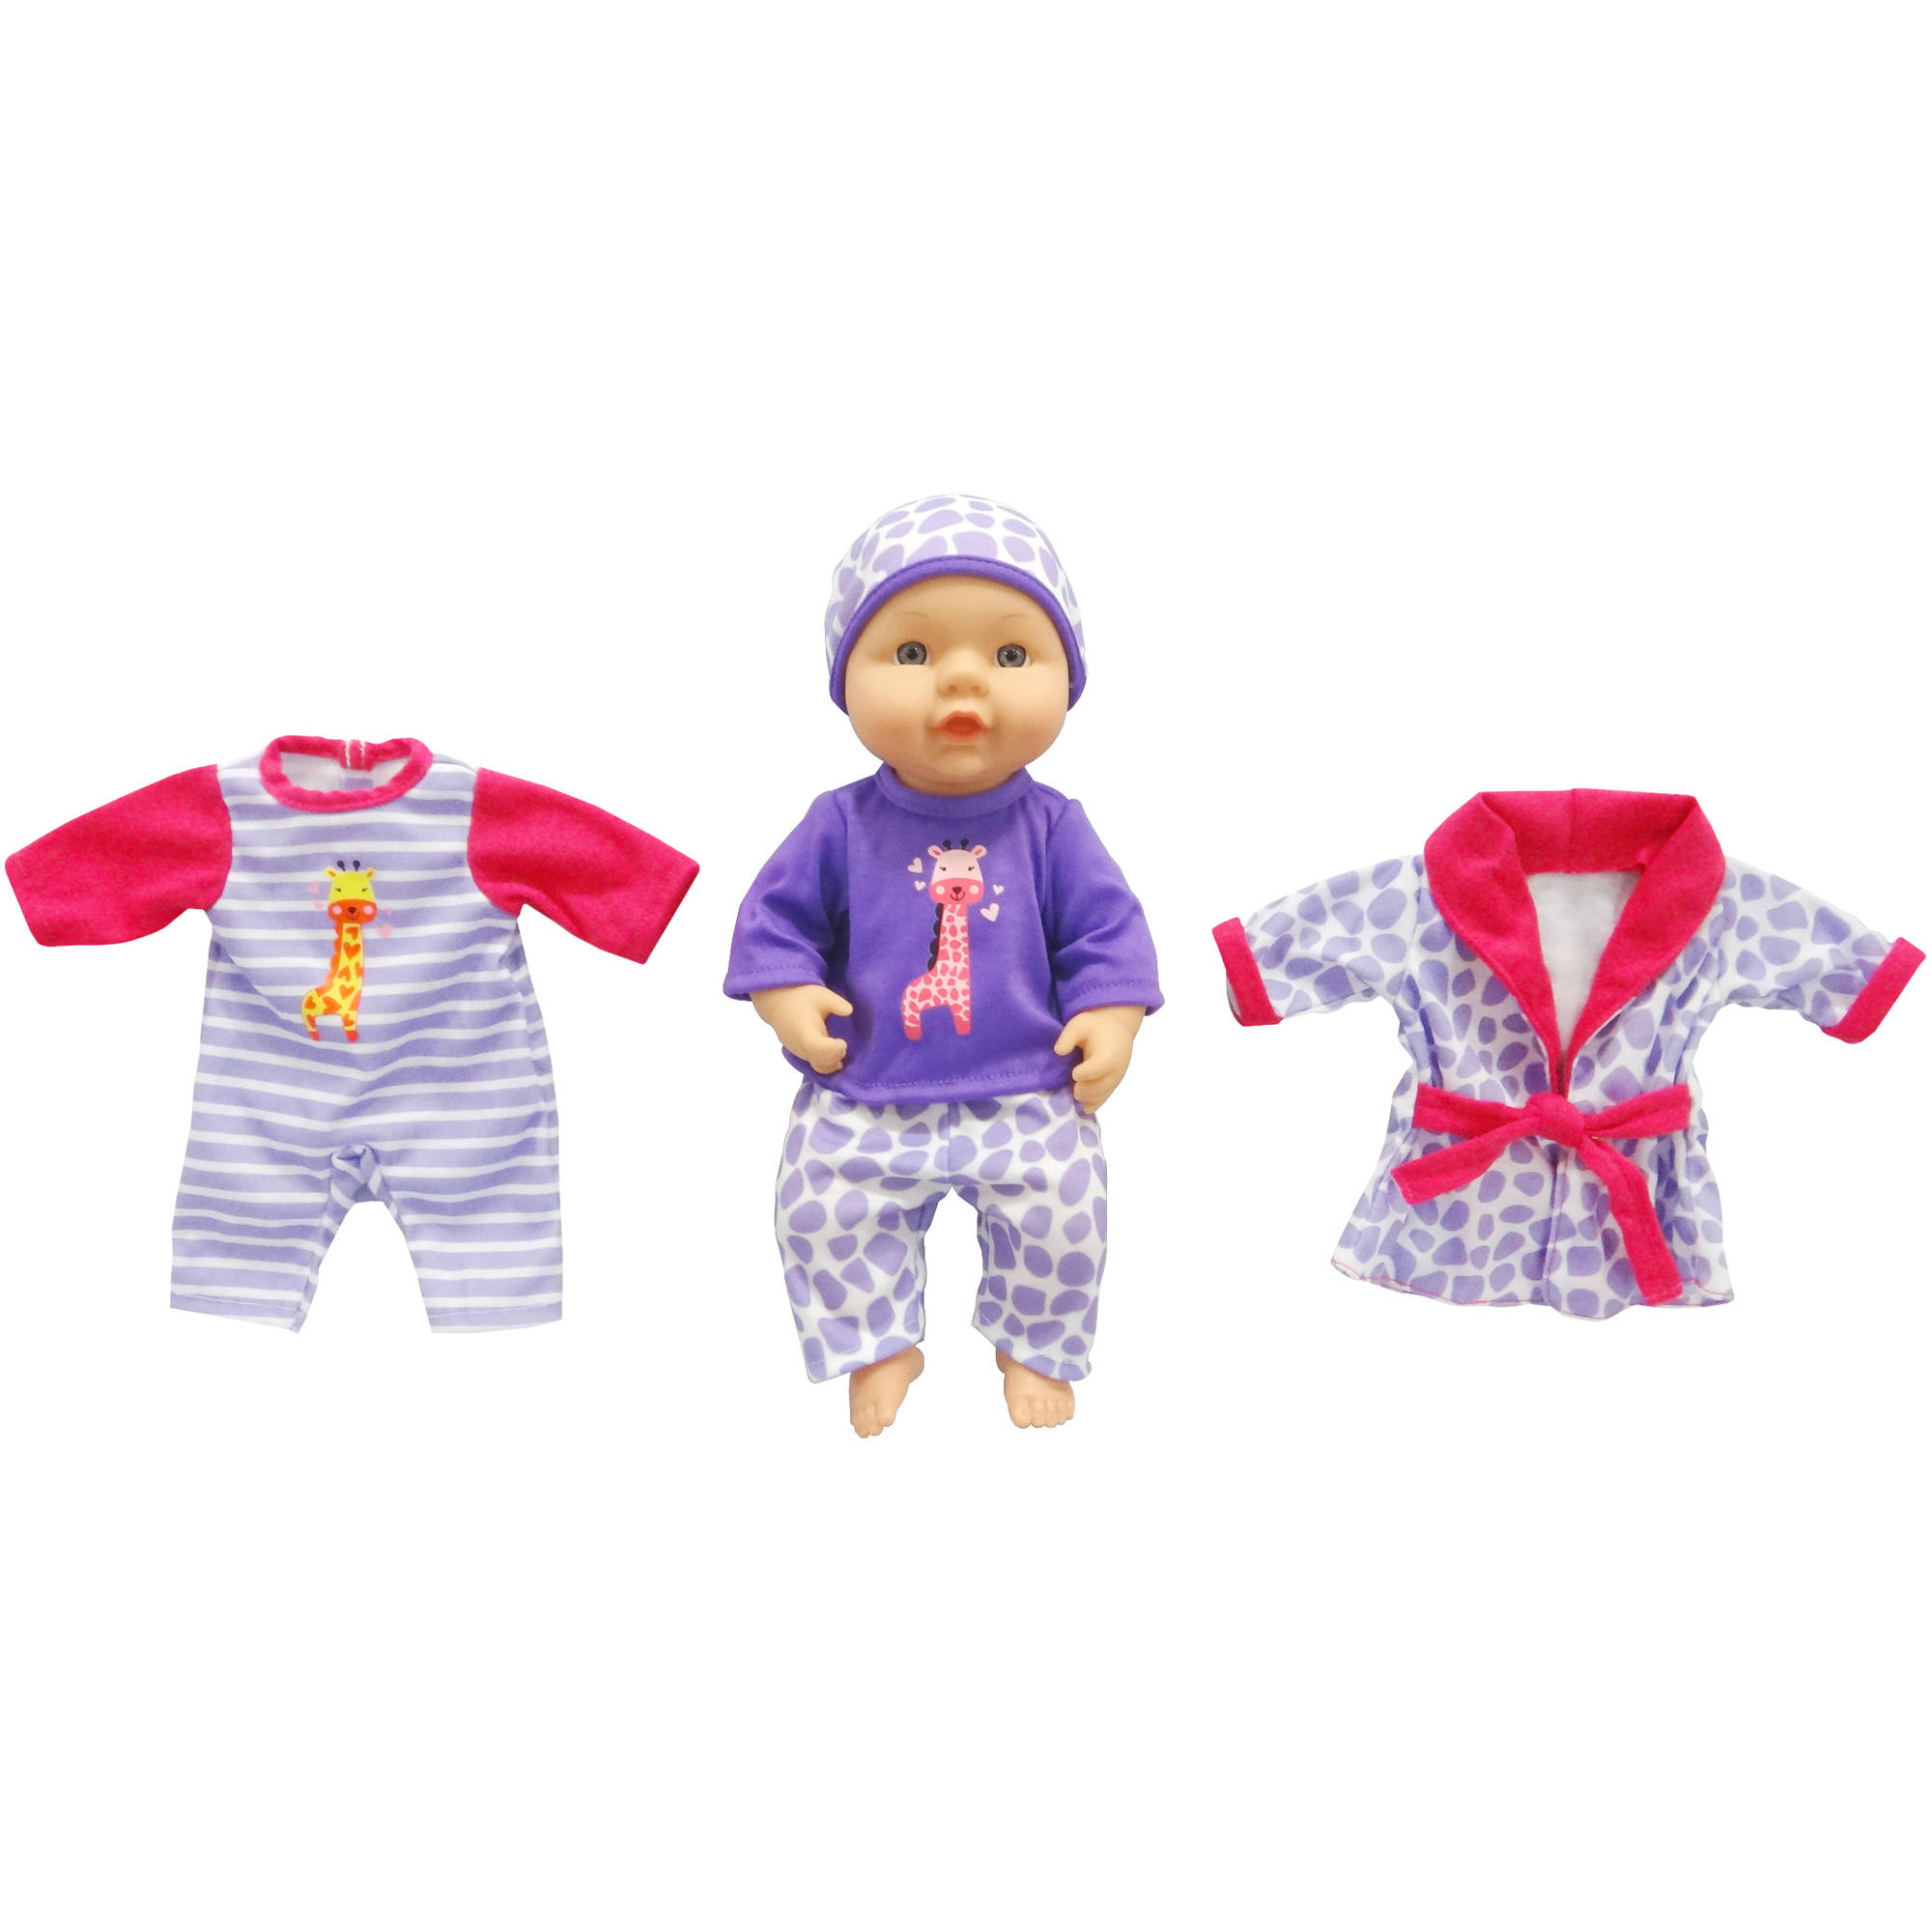 "My Sweet Love 12.5"" Baby with Outfits, Purple"